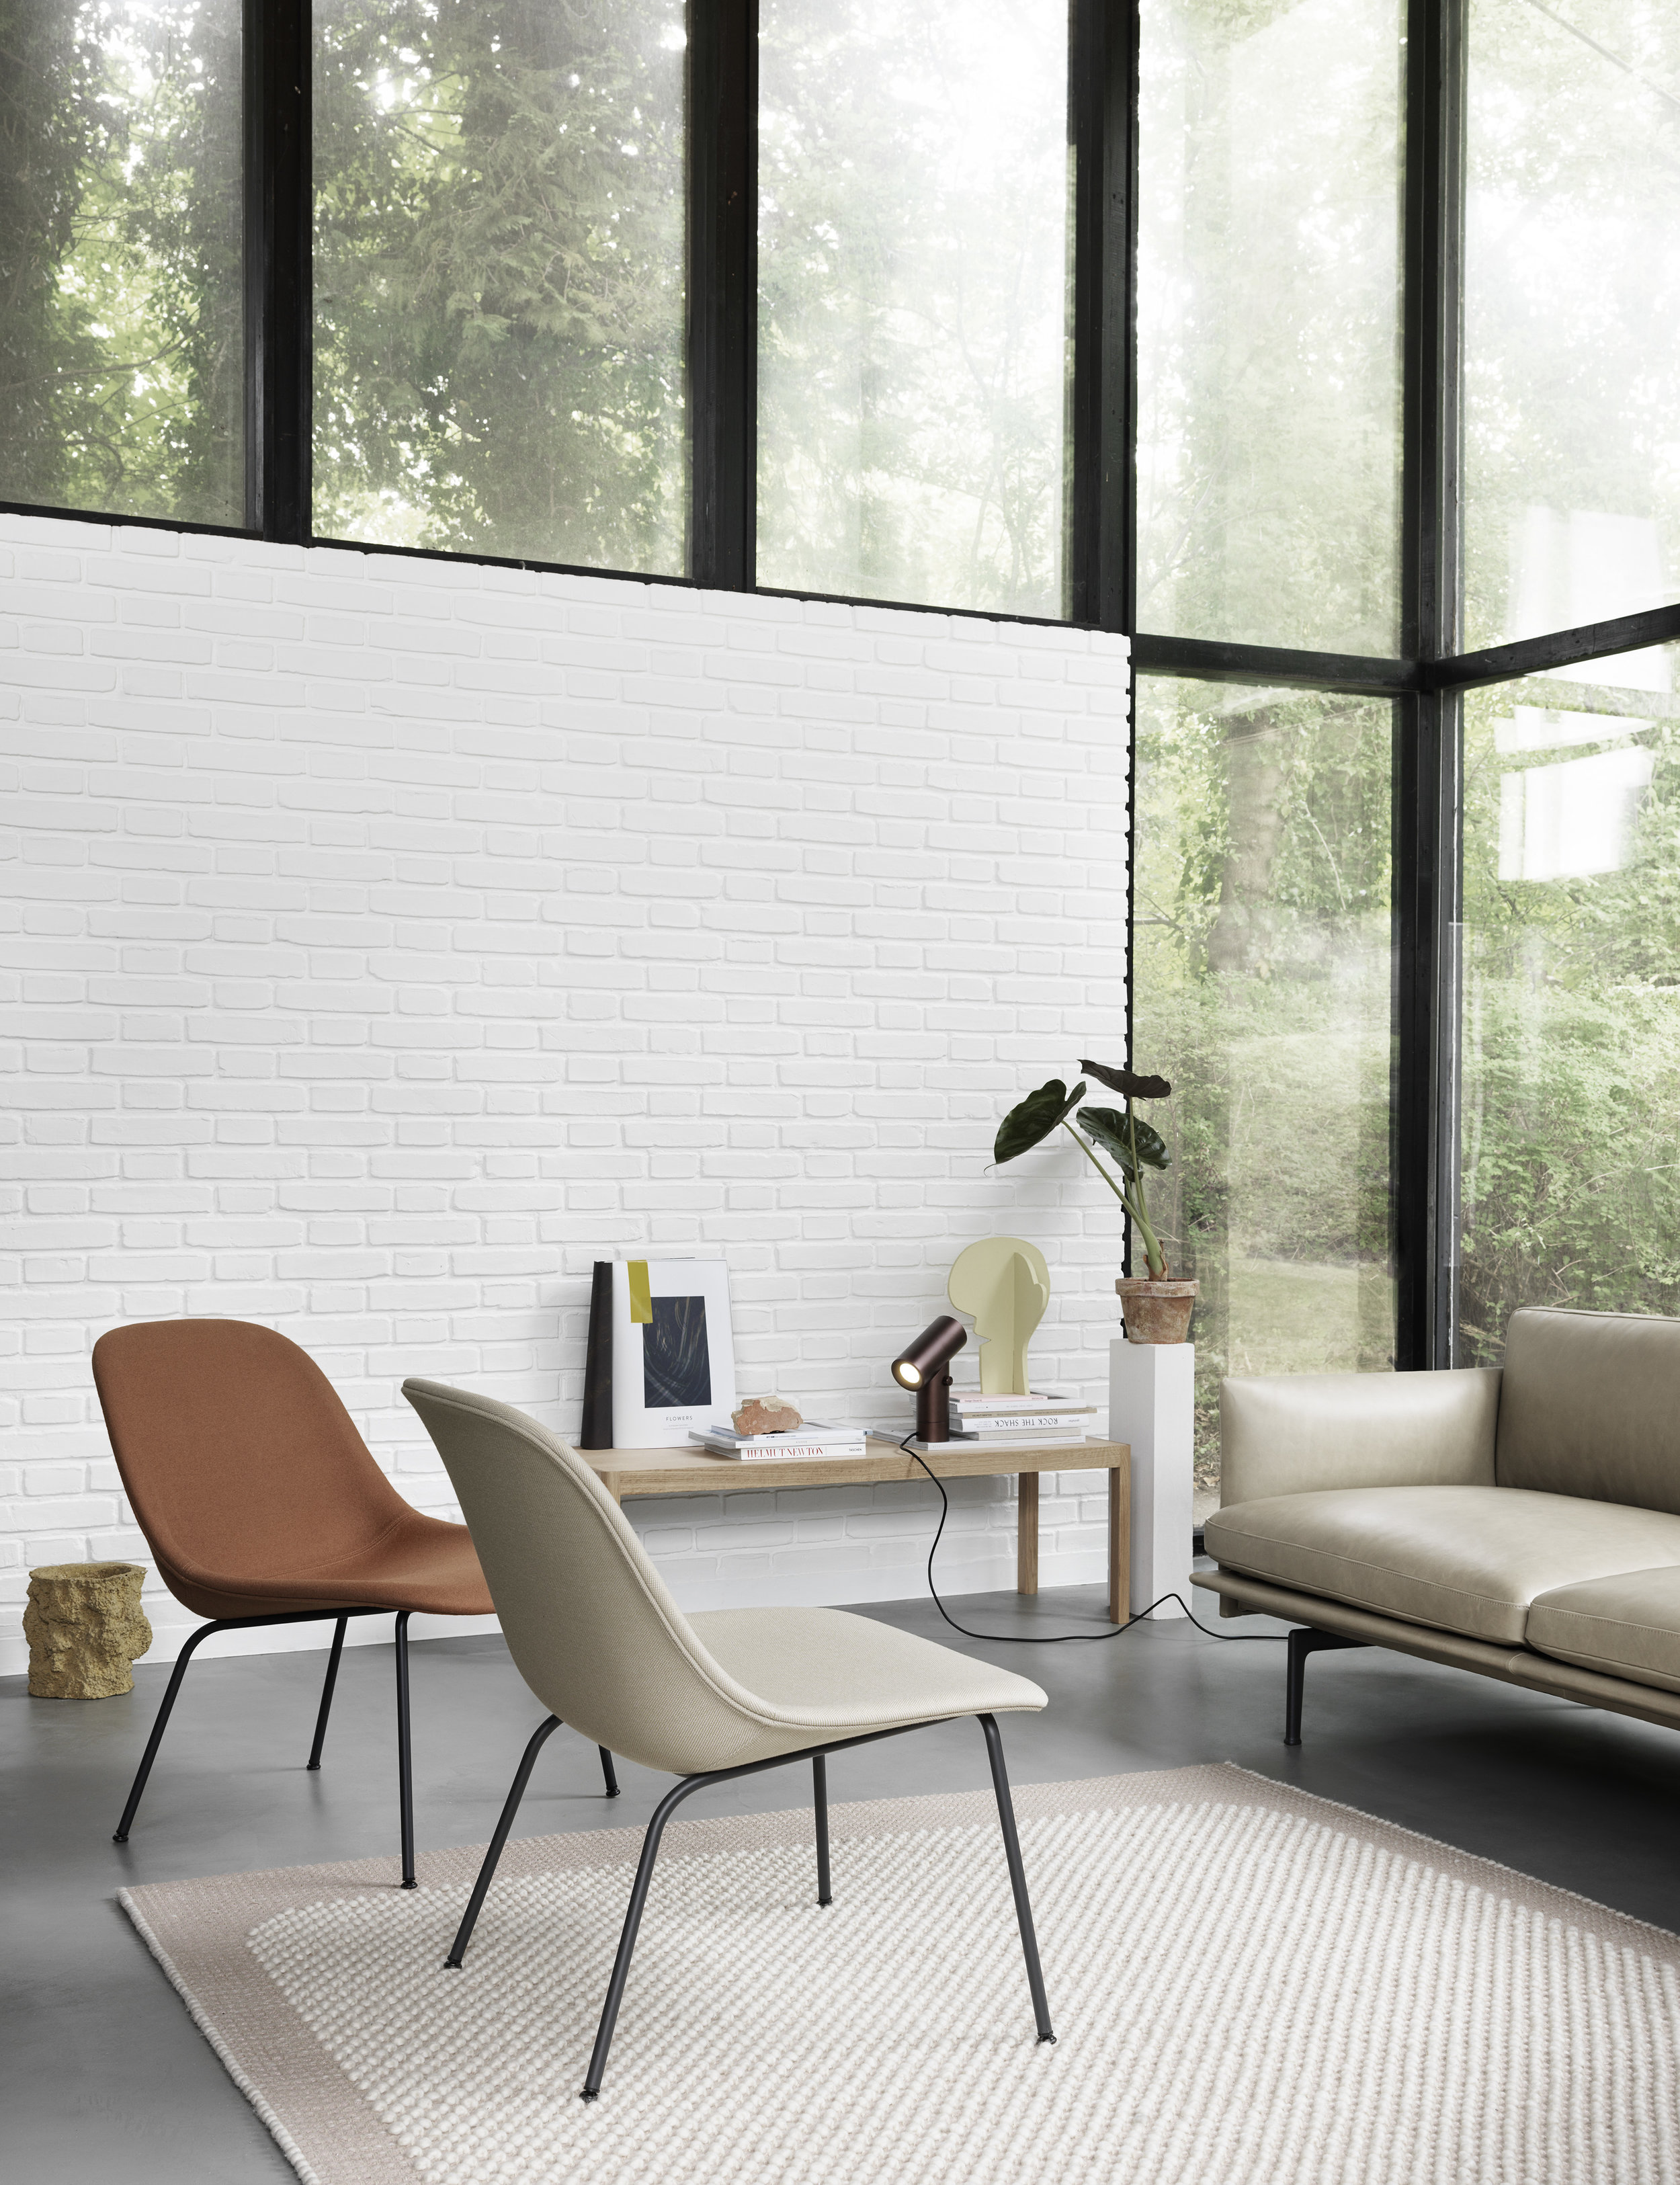 New furniture and rug from Muuto